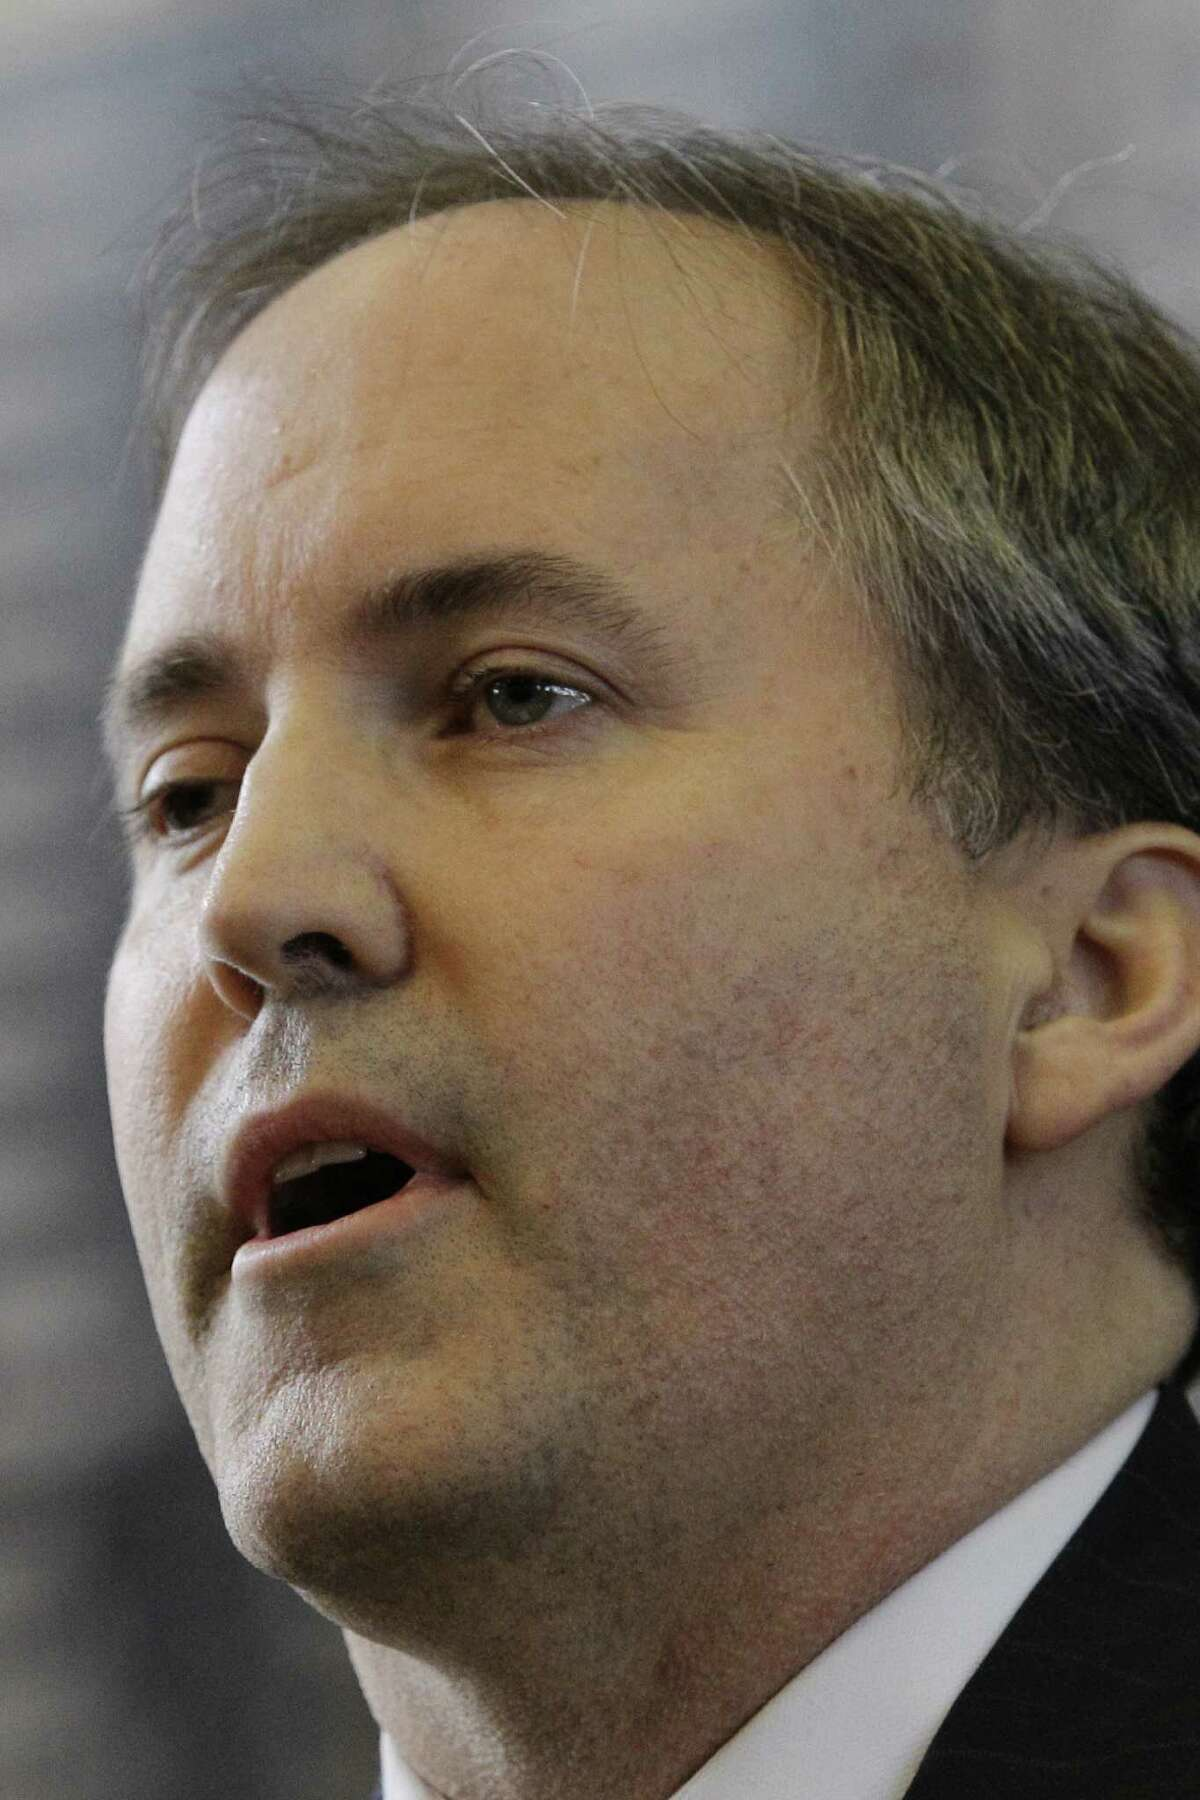 Ken Paxton was reprimanded and fined for selling securi- ties without registering with the state.